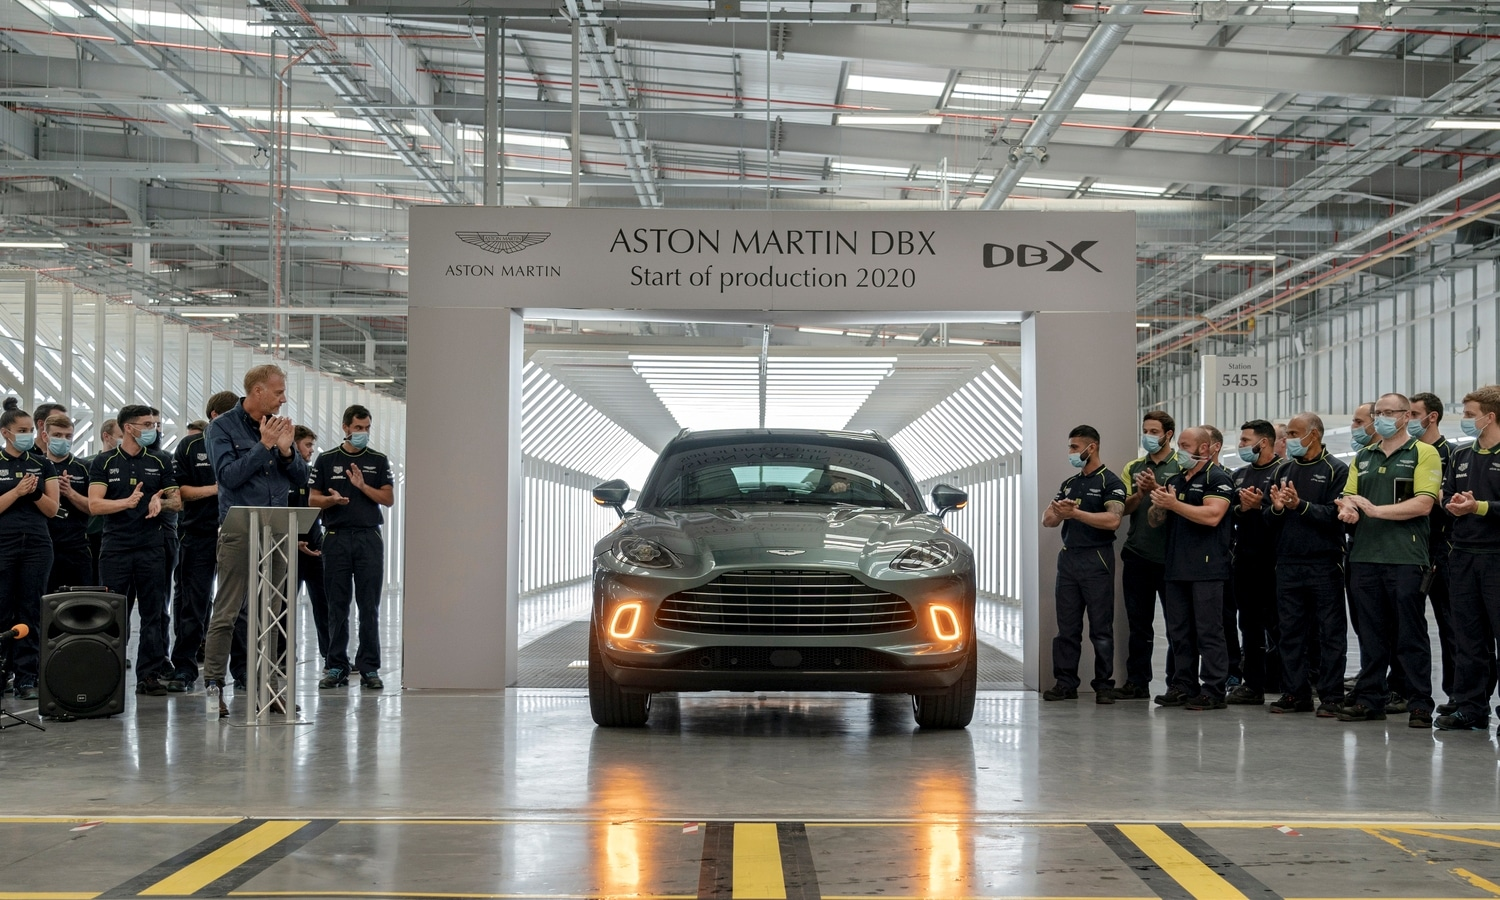 Aston Martin DBX start of production 2020